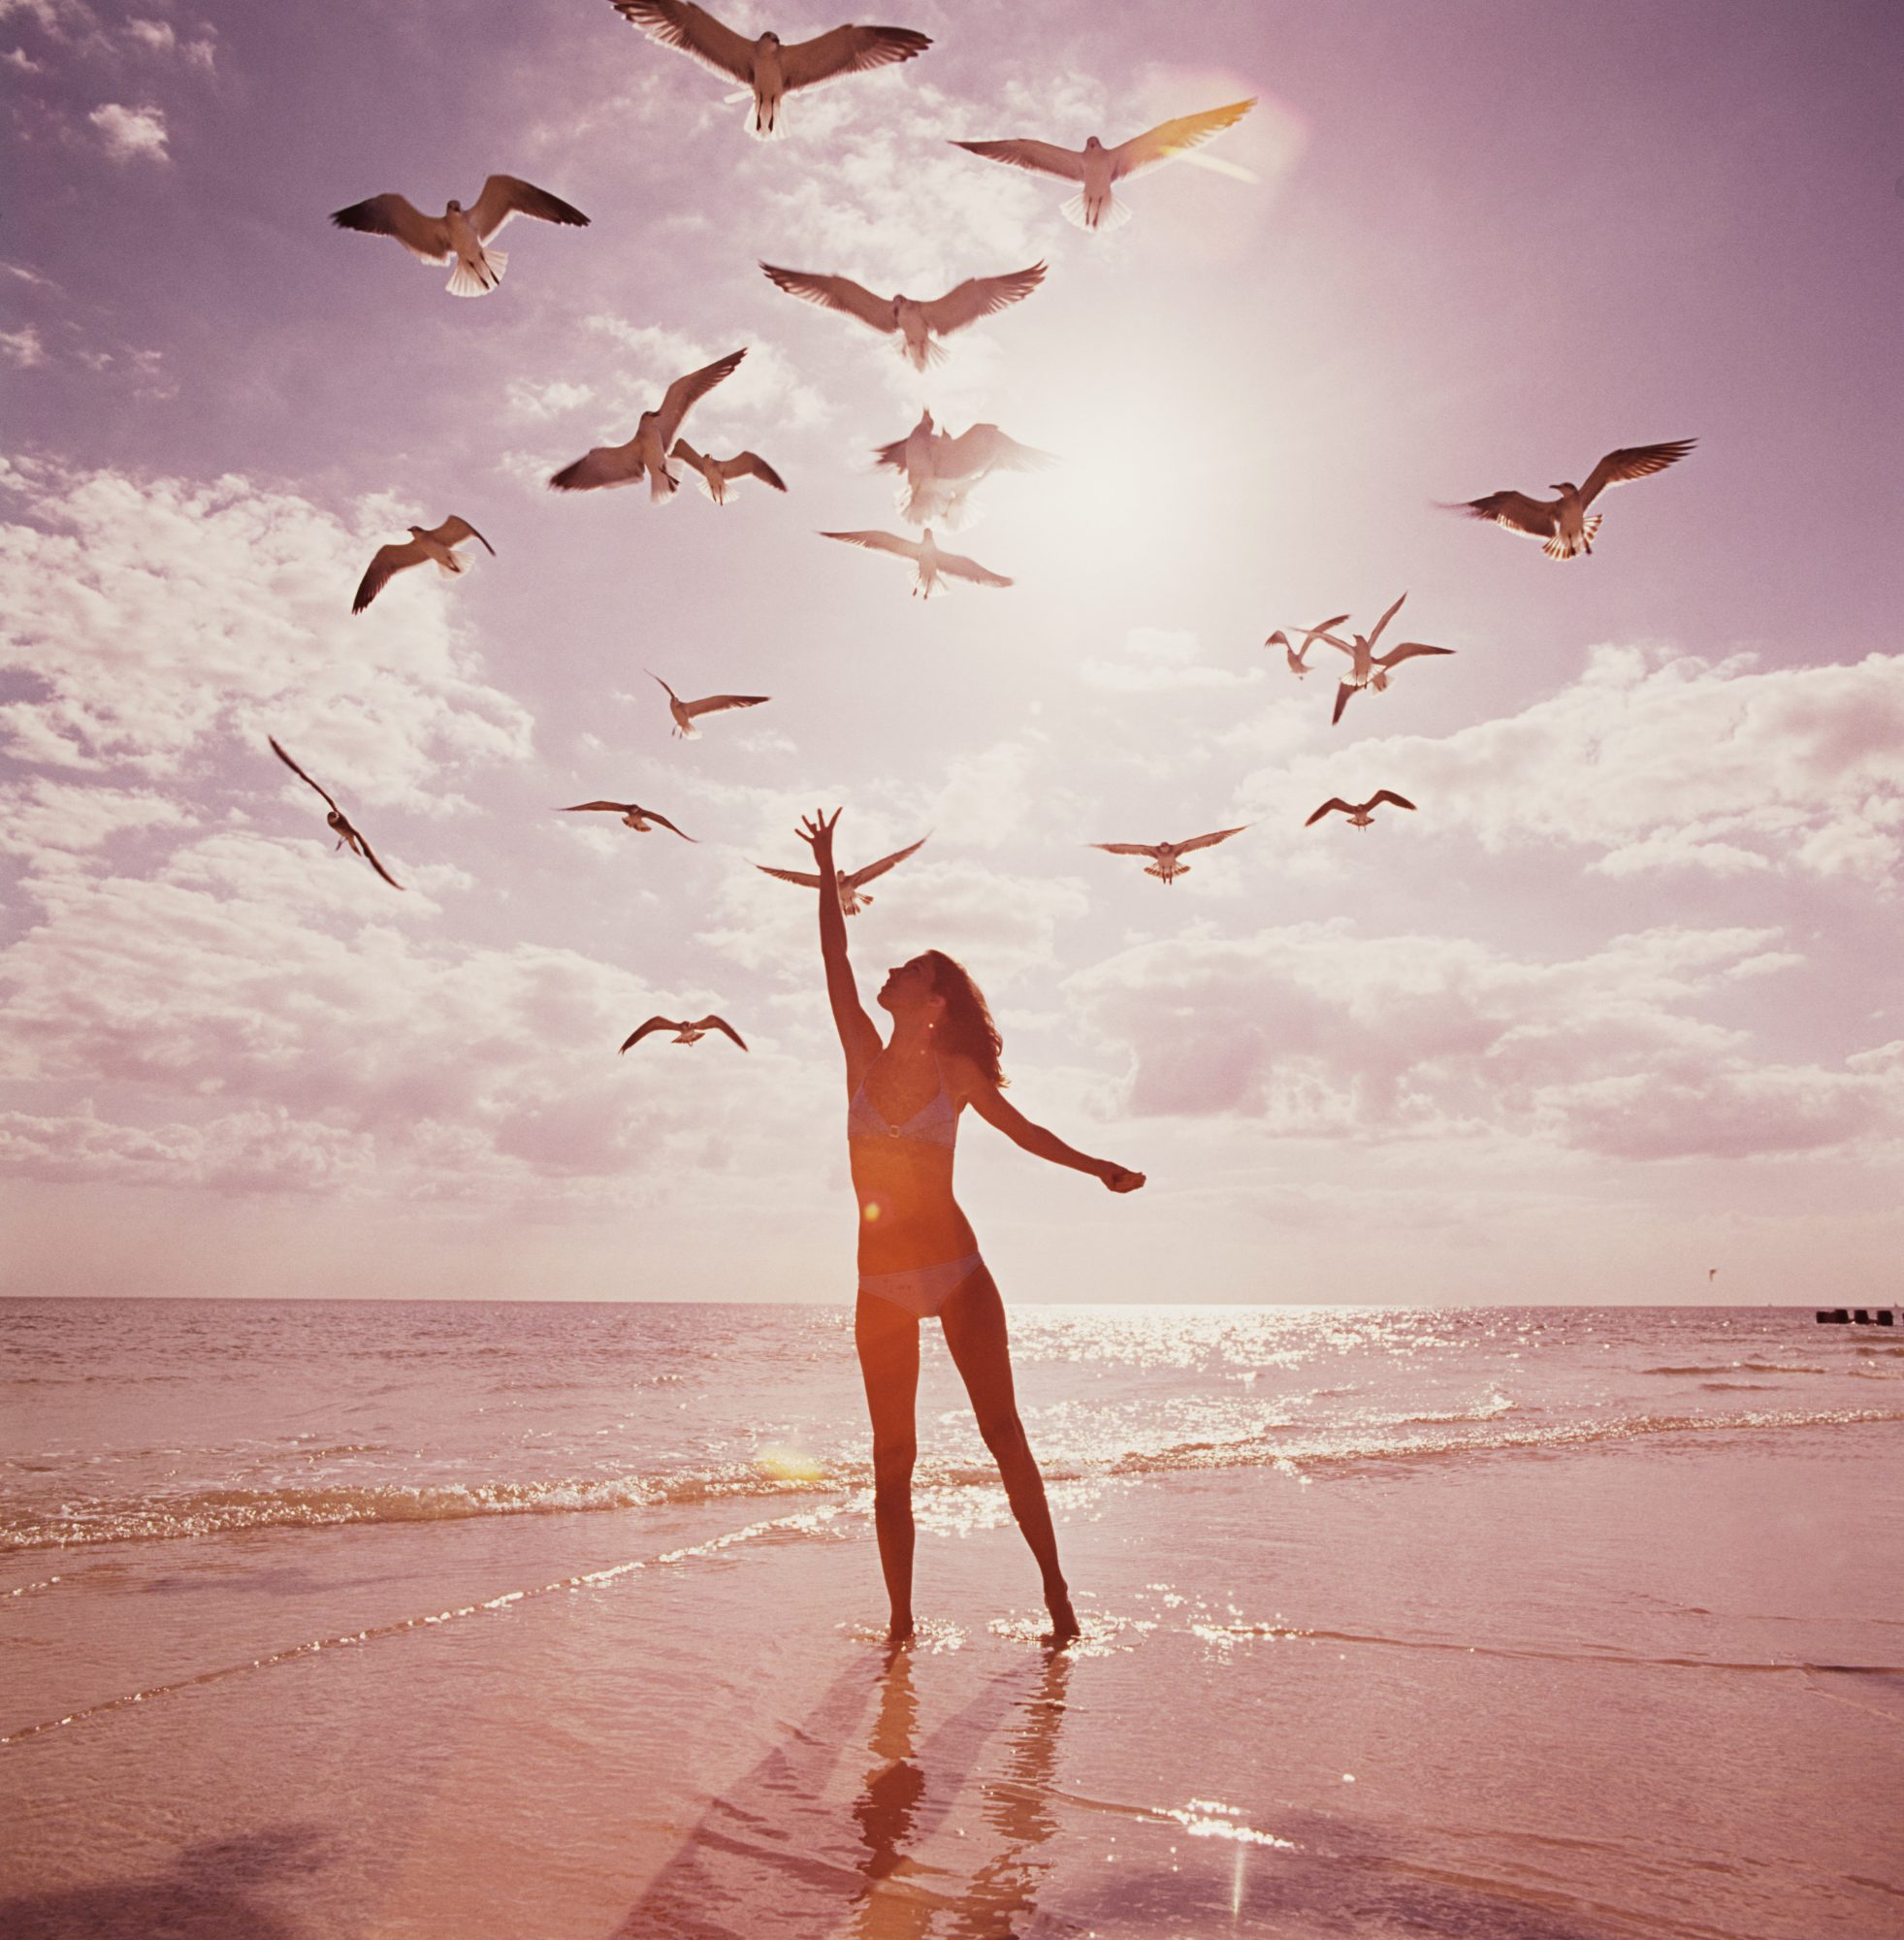 Woman on beach reaching for seagulls